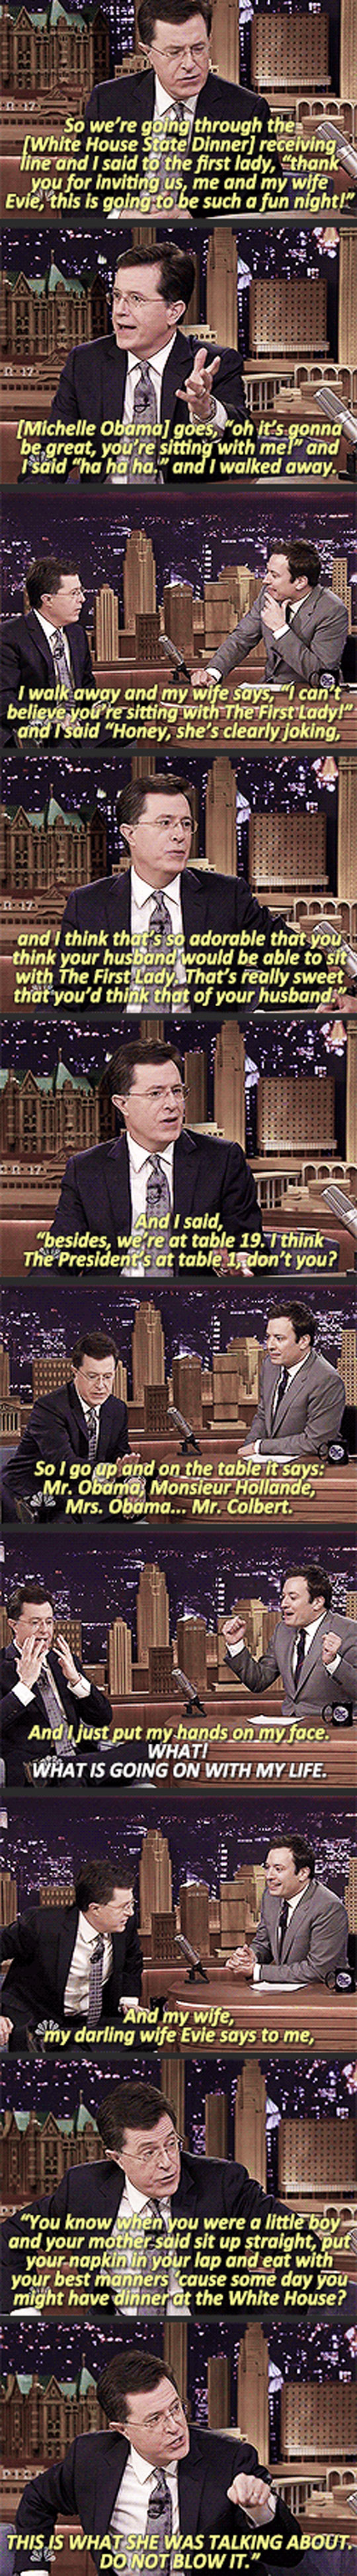 funny-picture-Stephen-Colbert-Jimmy-Fallon-wife